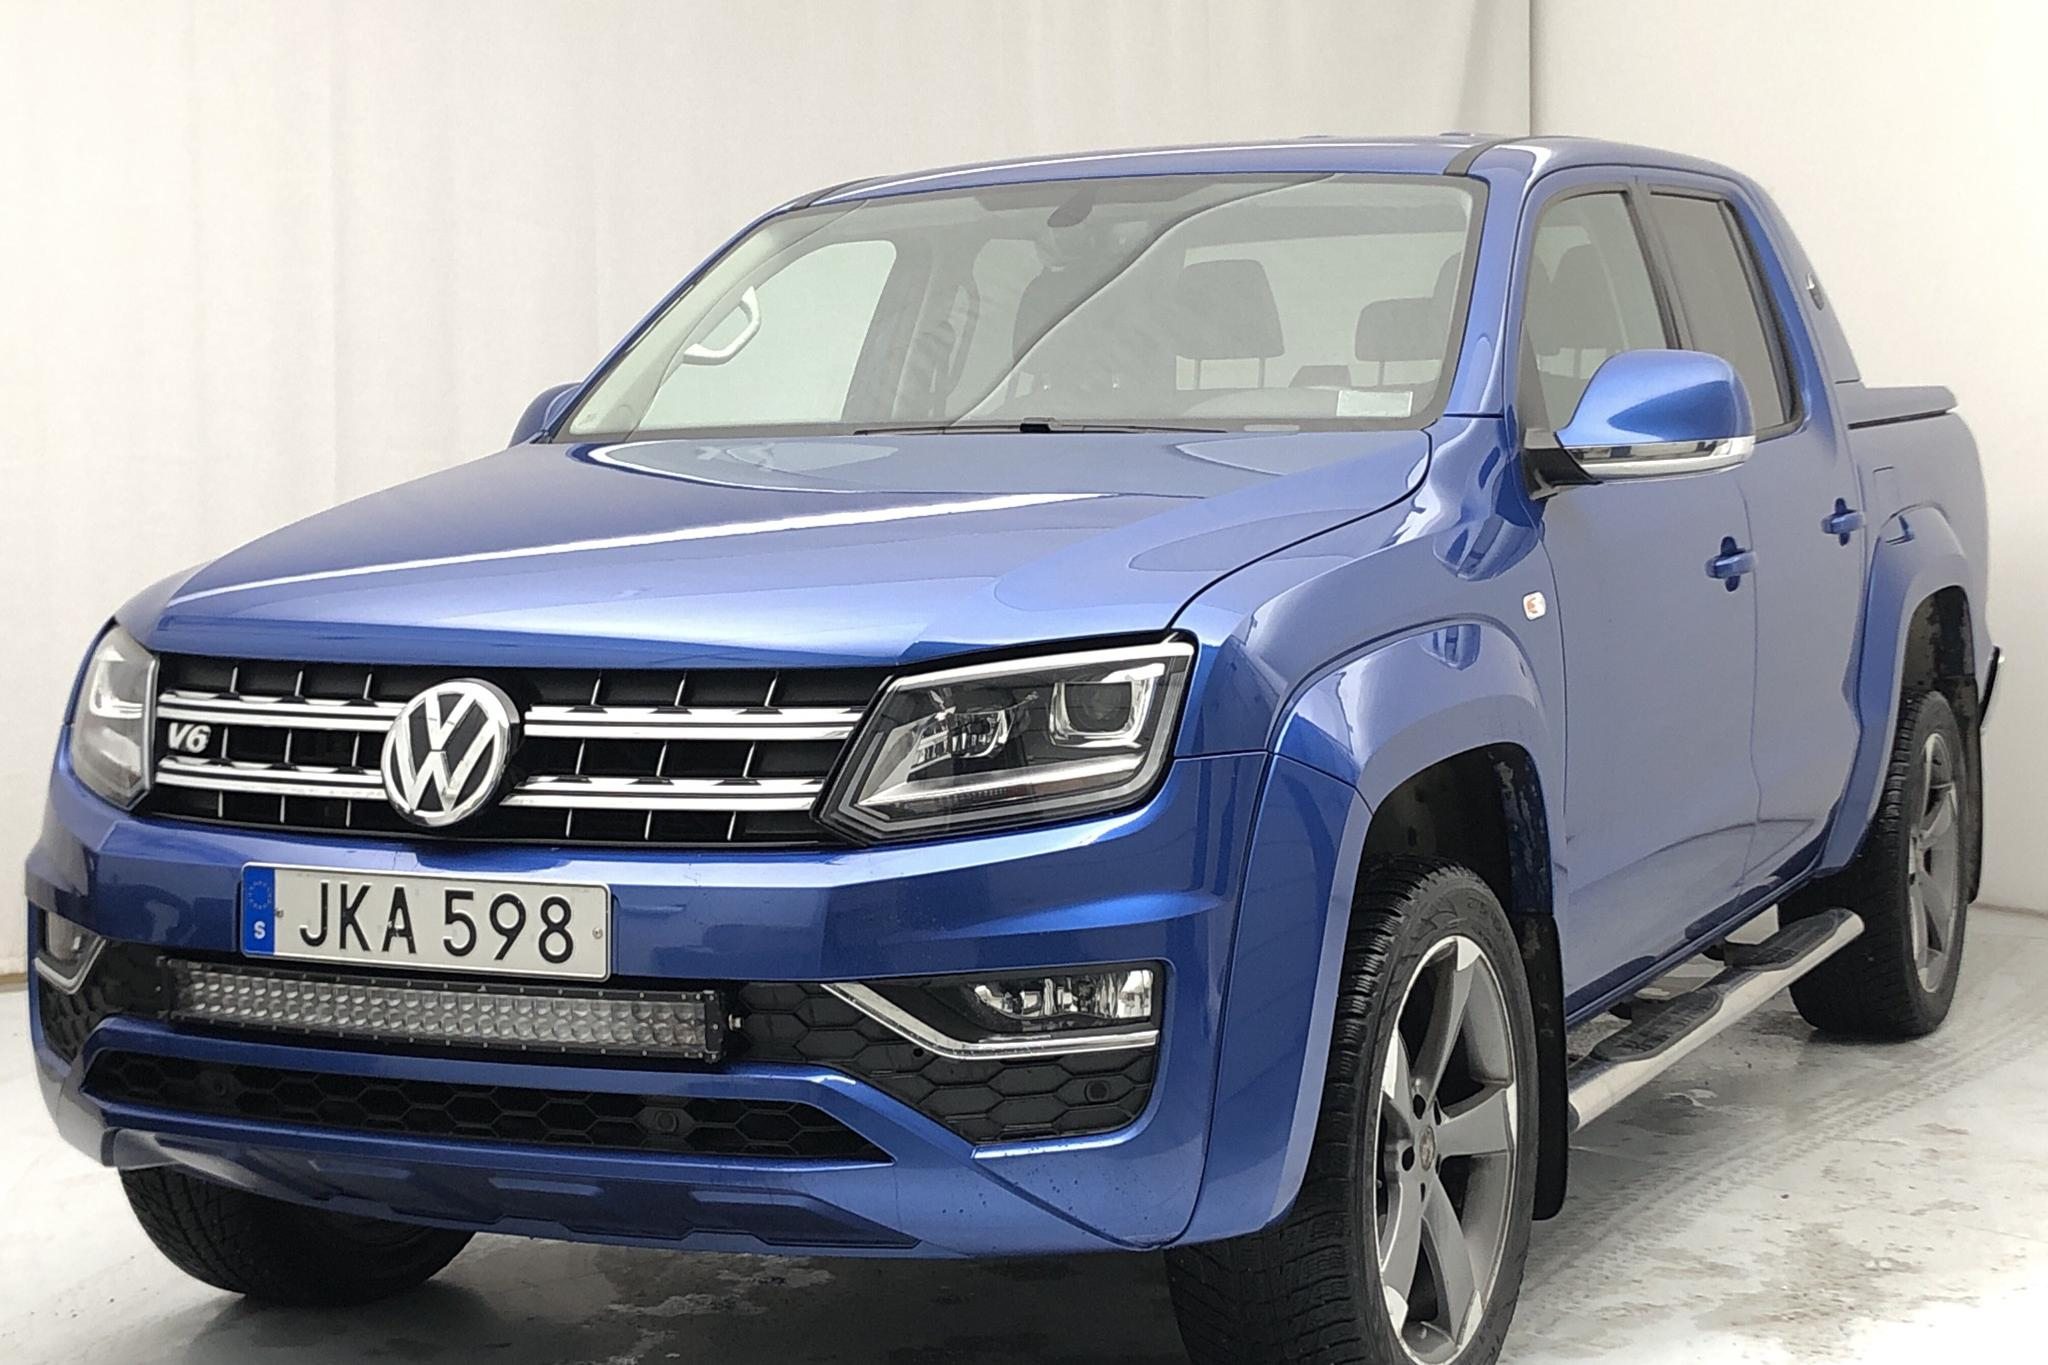 VW Amarok 3.0 TDI 4motion (224hk) - 109 500 km - Automatic - blue - 2017